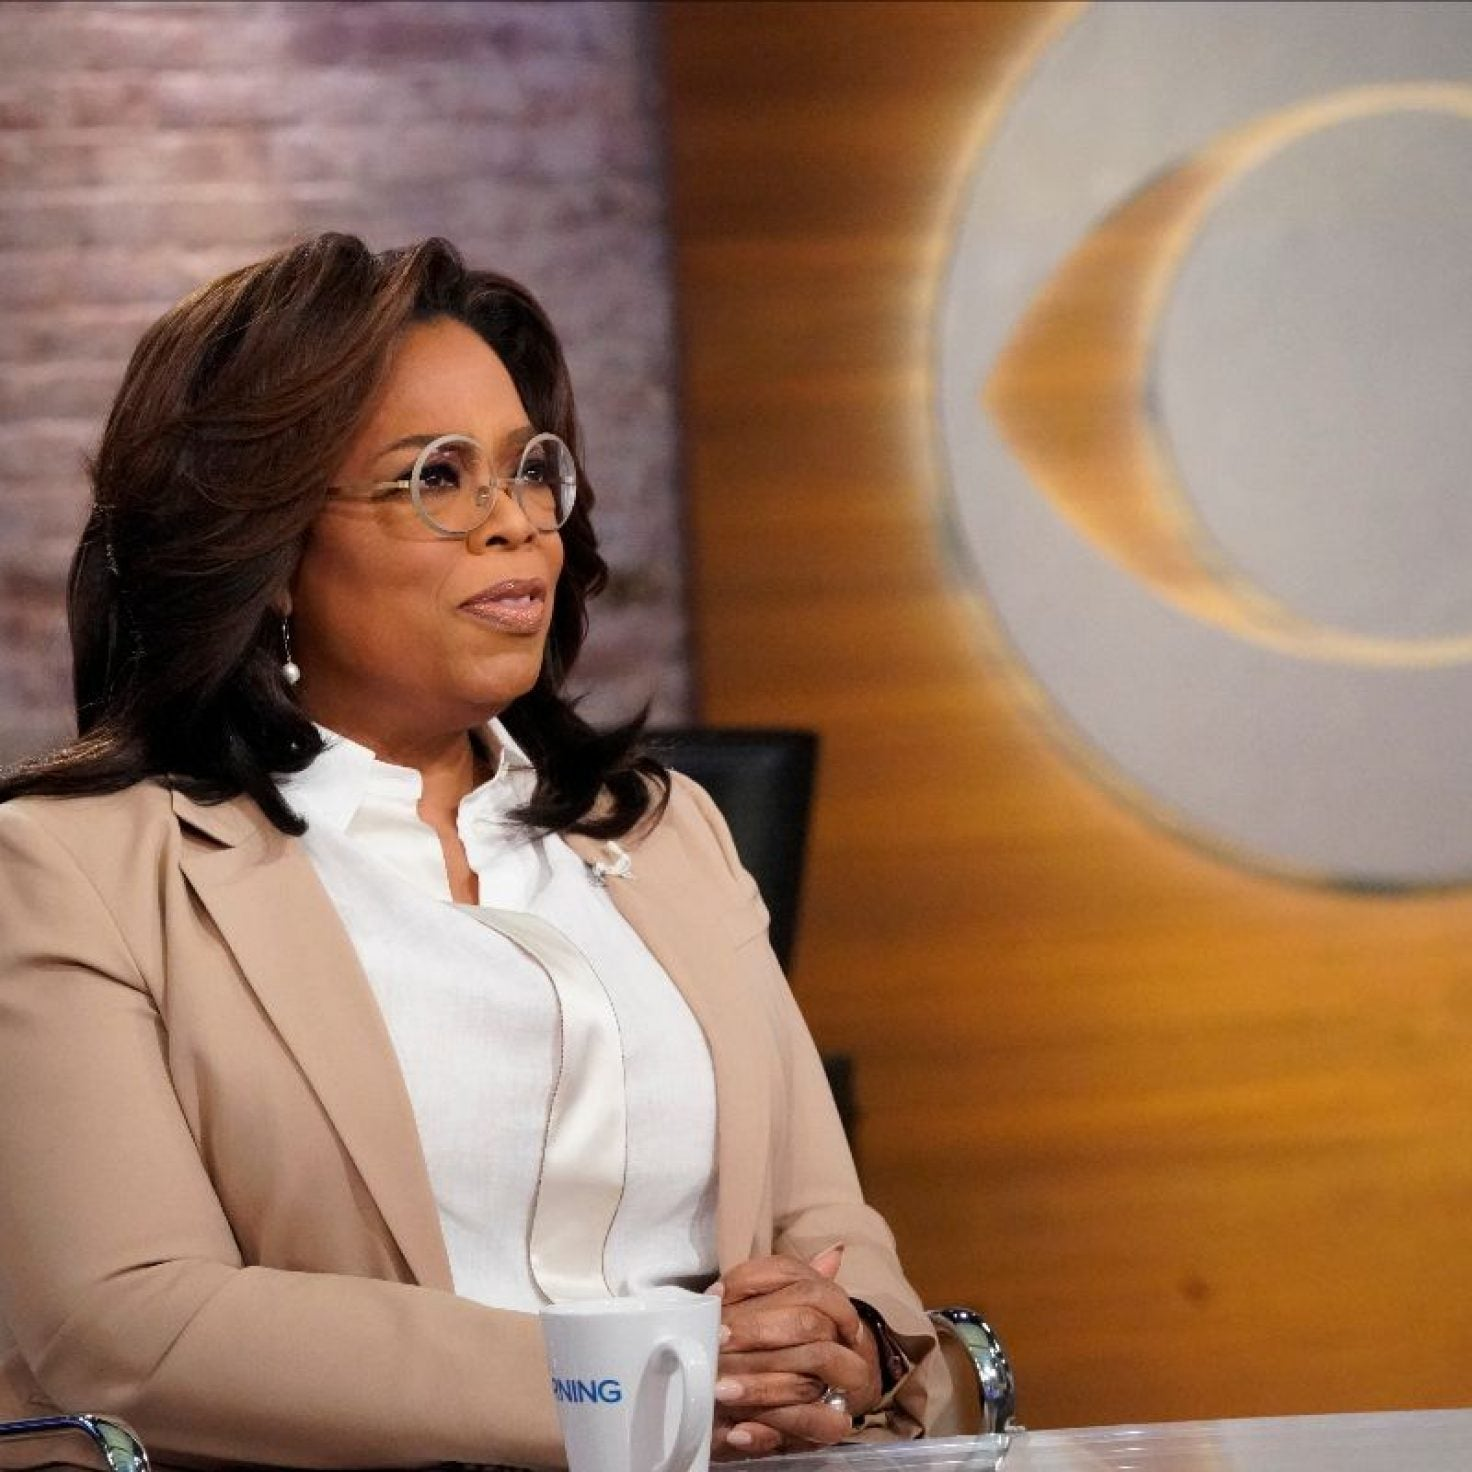 Oprah Winfrey Says She Didn't Leave #MeToo Documentary Because Of Russell Simmons: 'I Cannot Be Silenced'